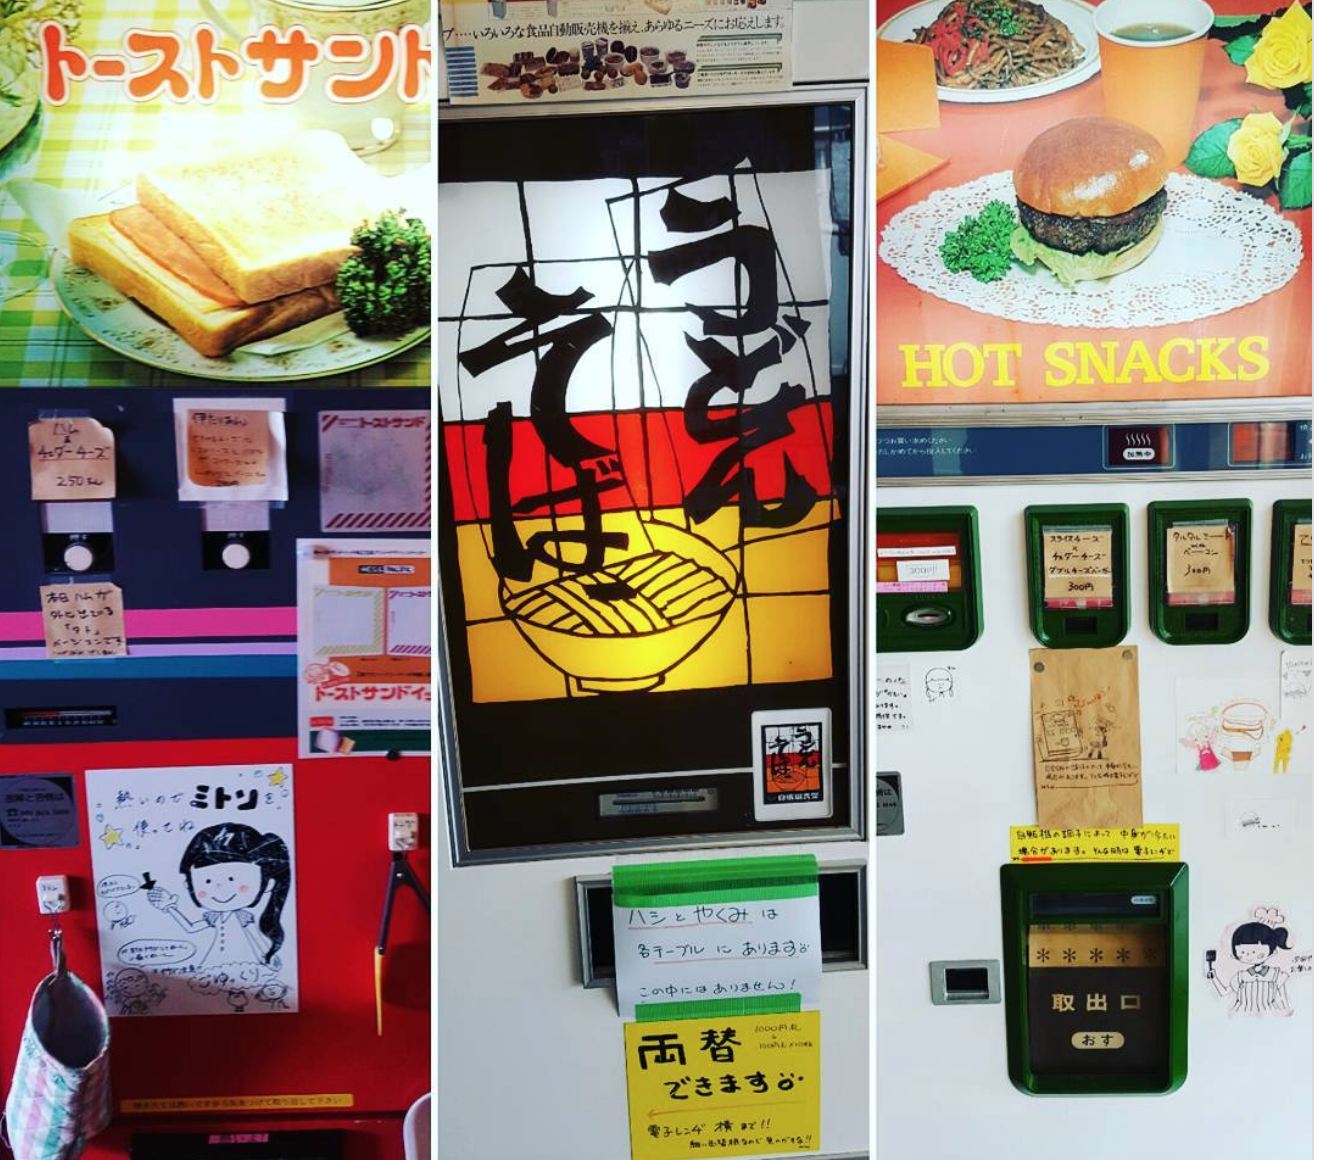 Japanese vending machines selling hot foods.